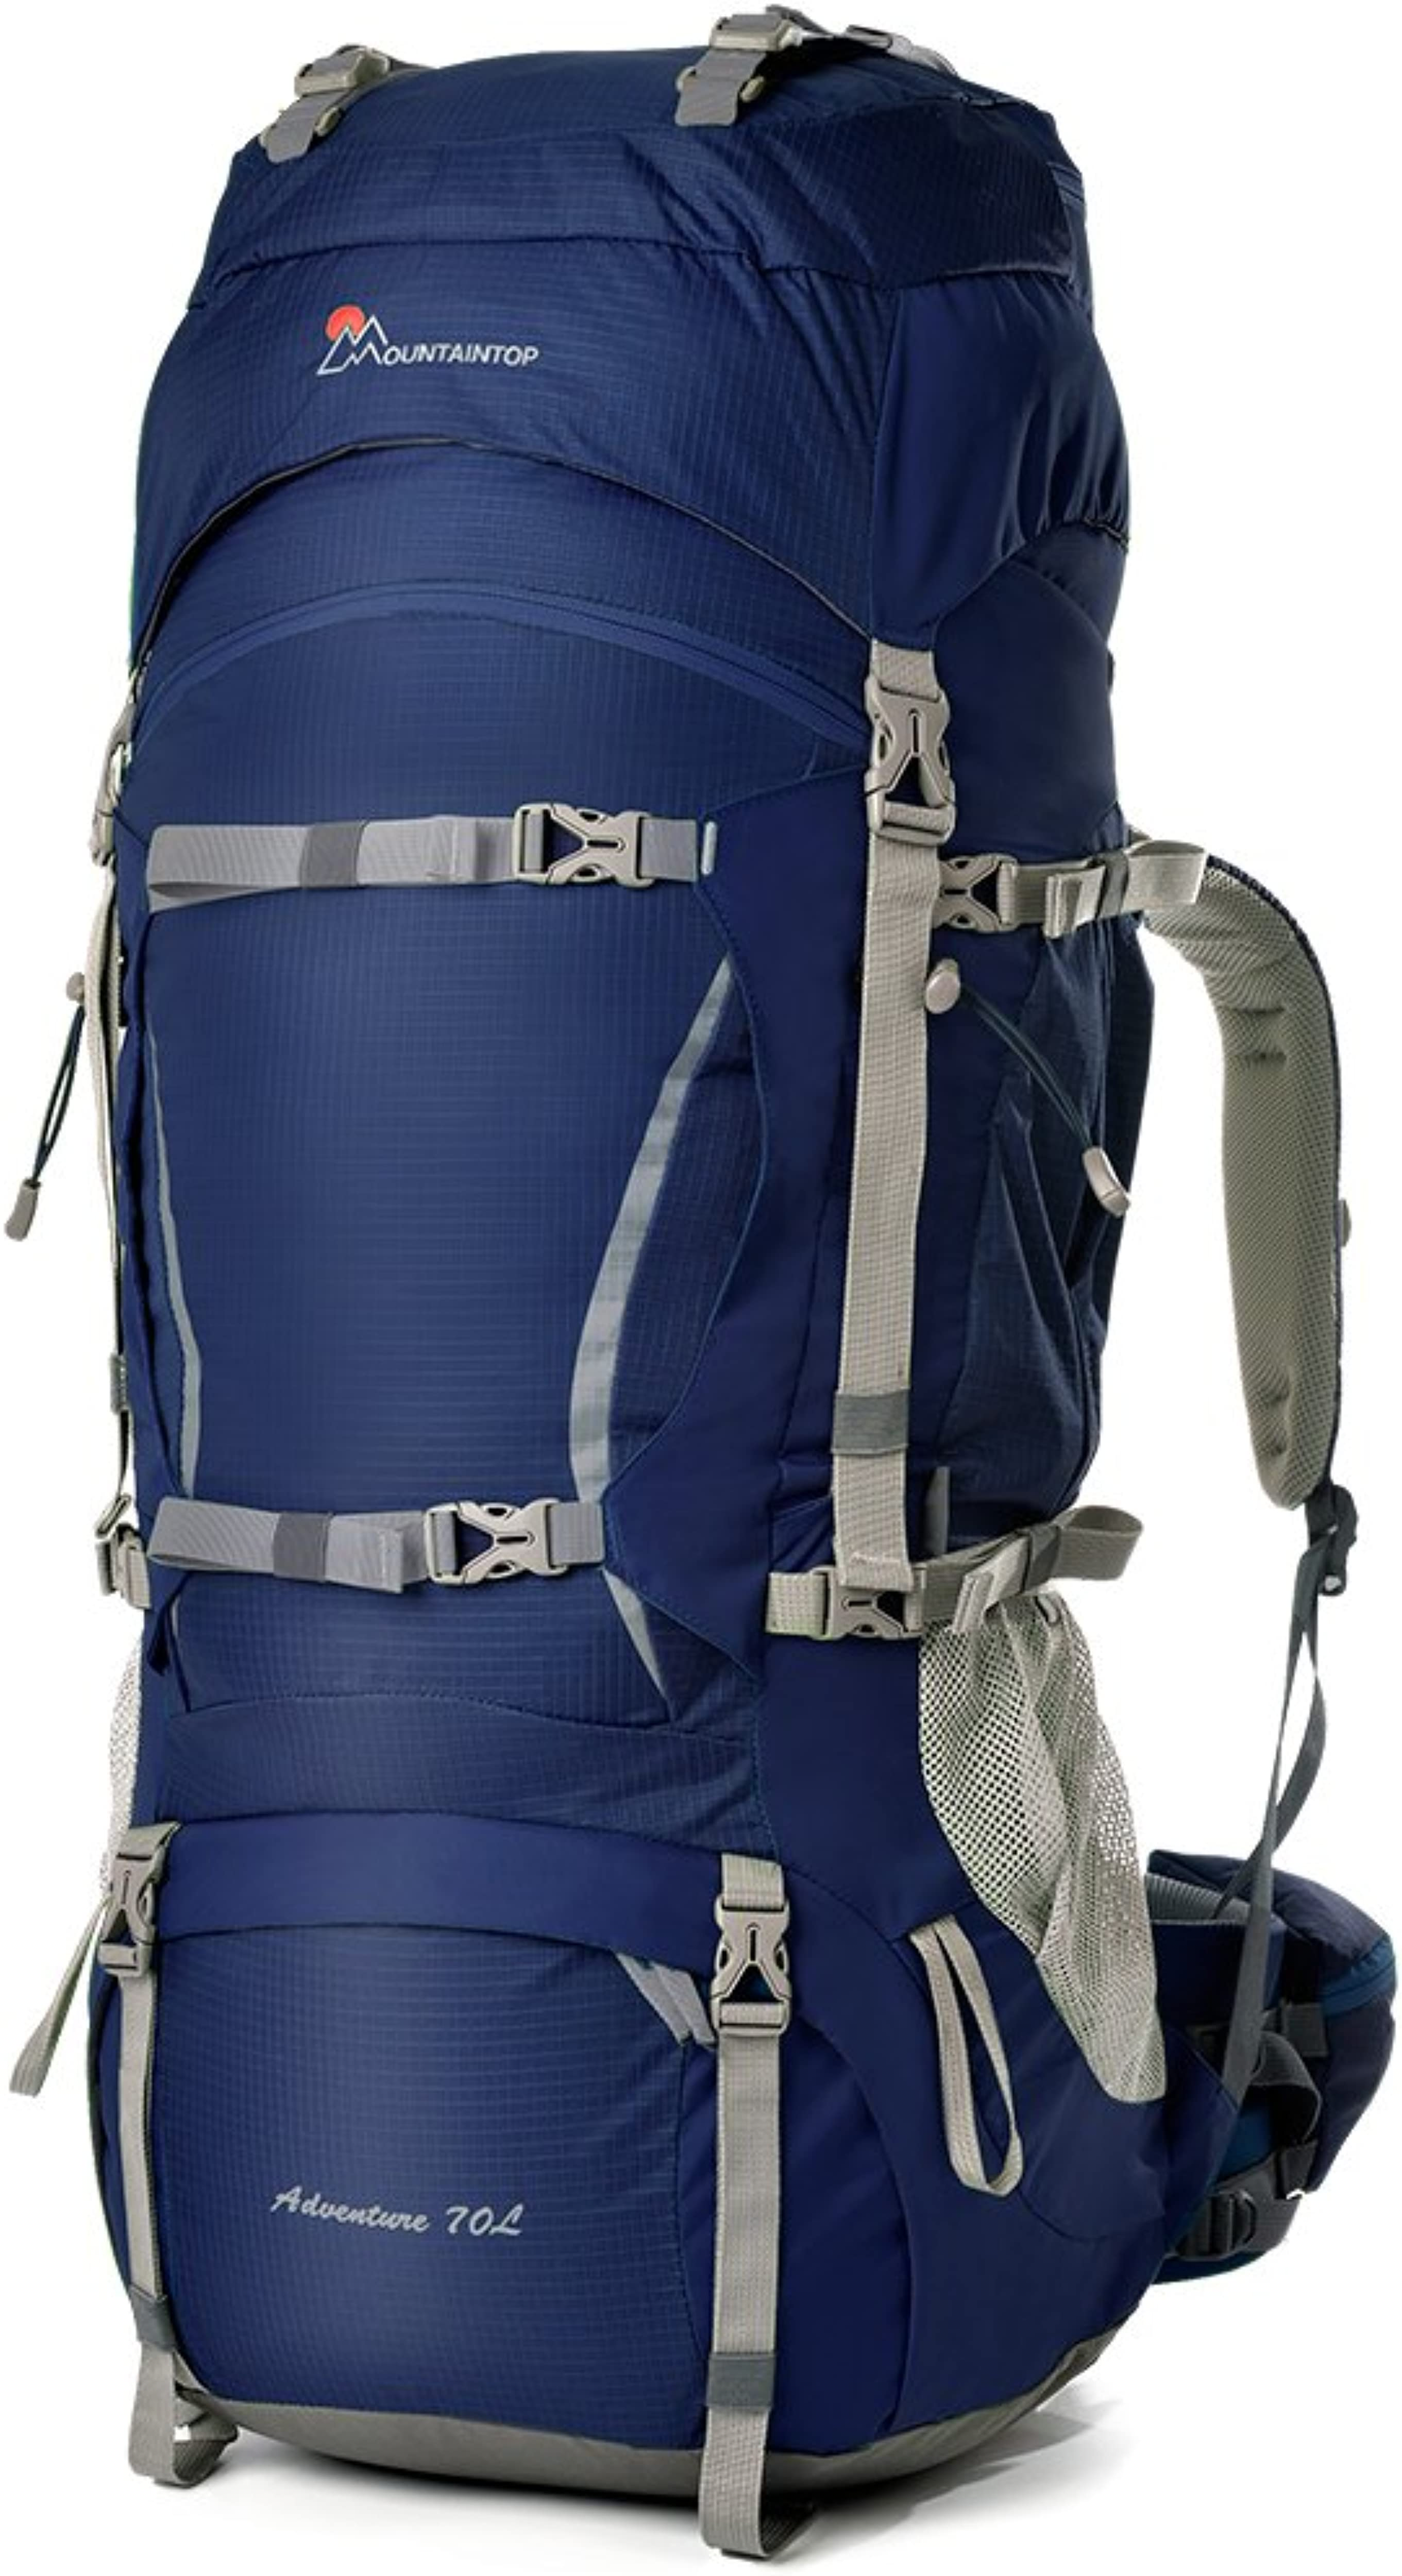 Mountaintop 70L Backpack Review with features and pros and cons